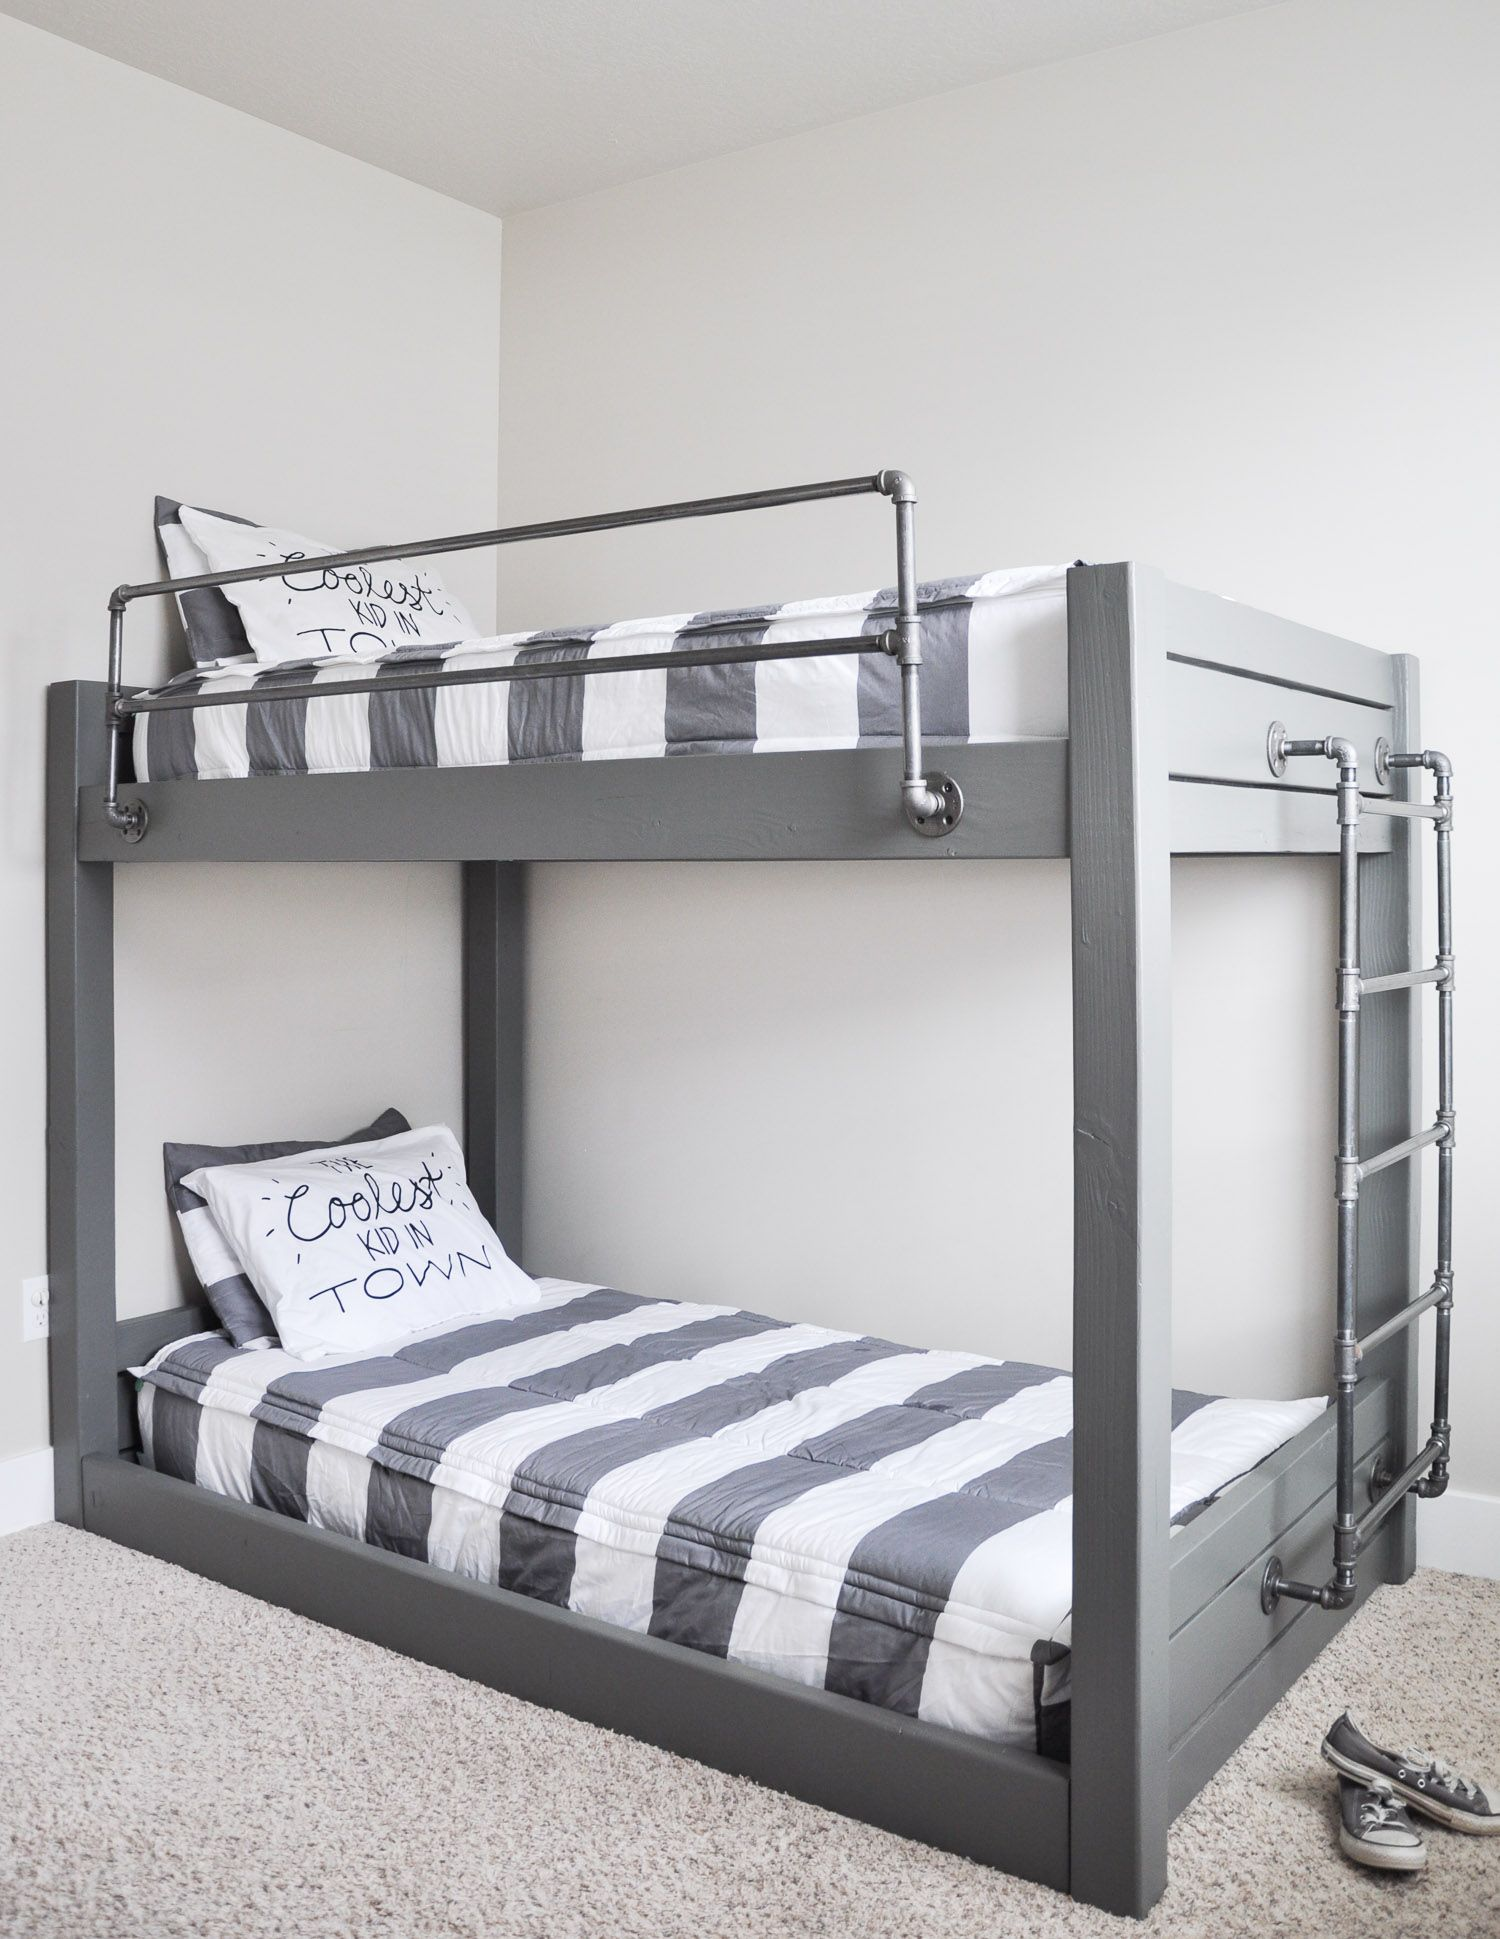 Double Your Sleeping E With These Easy To Build Diy Bunk Bed Free Plans Using Basic Lumber And Metal Pipe From The Hardware